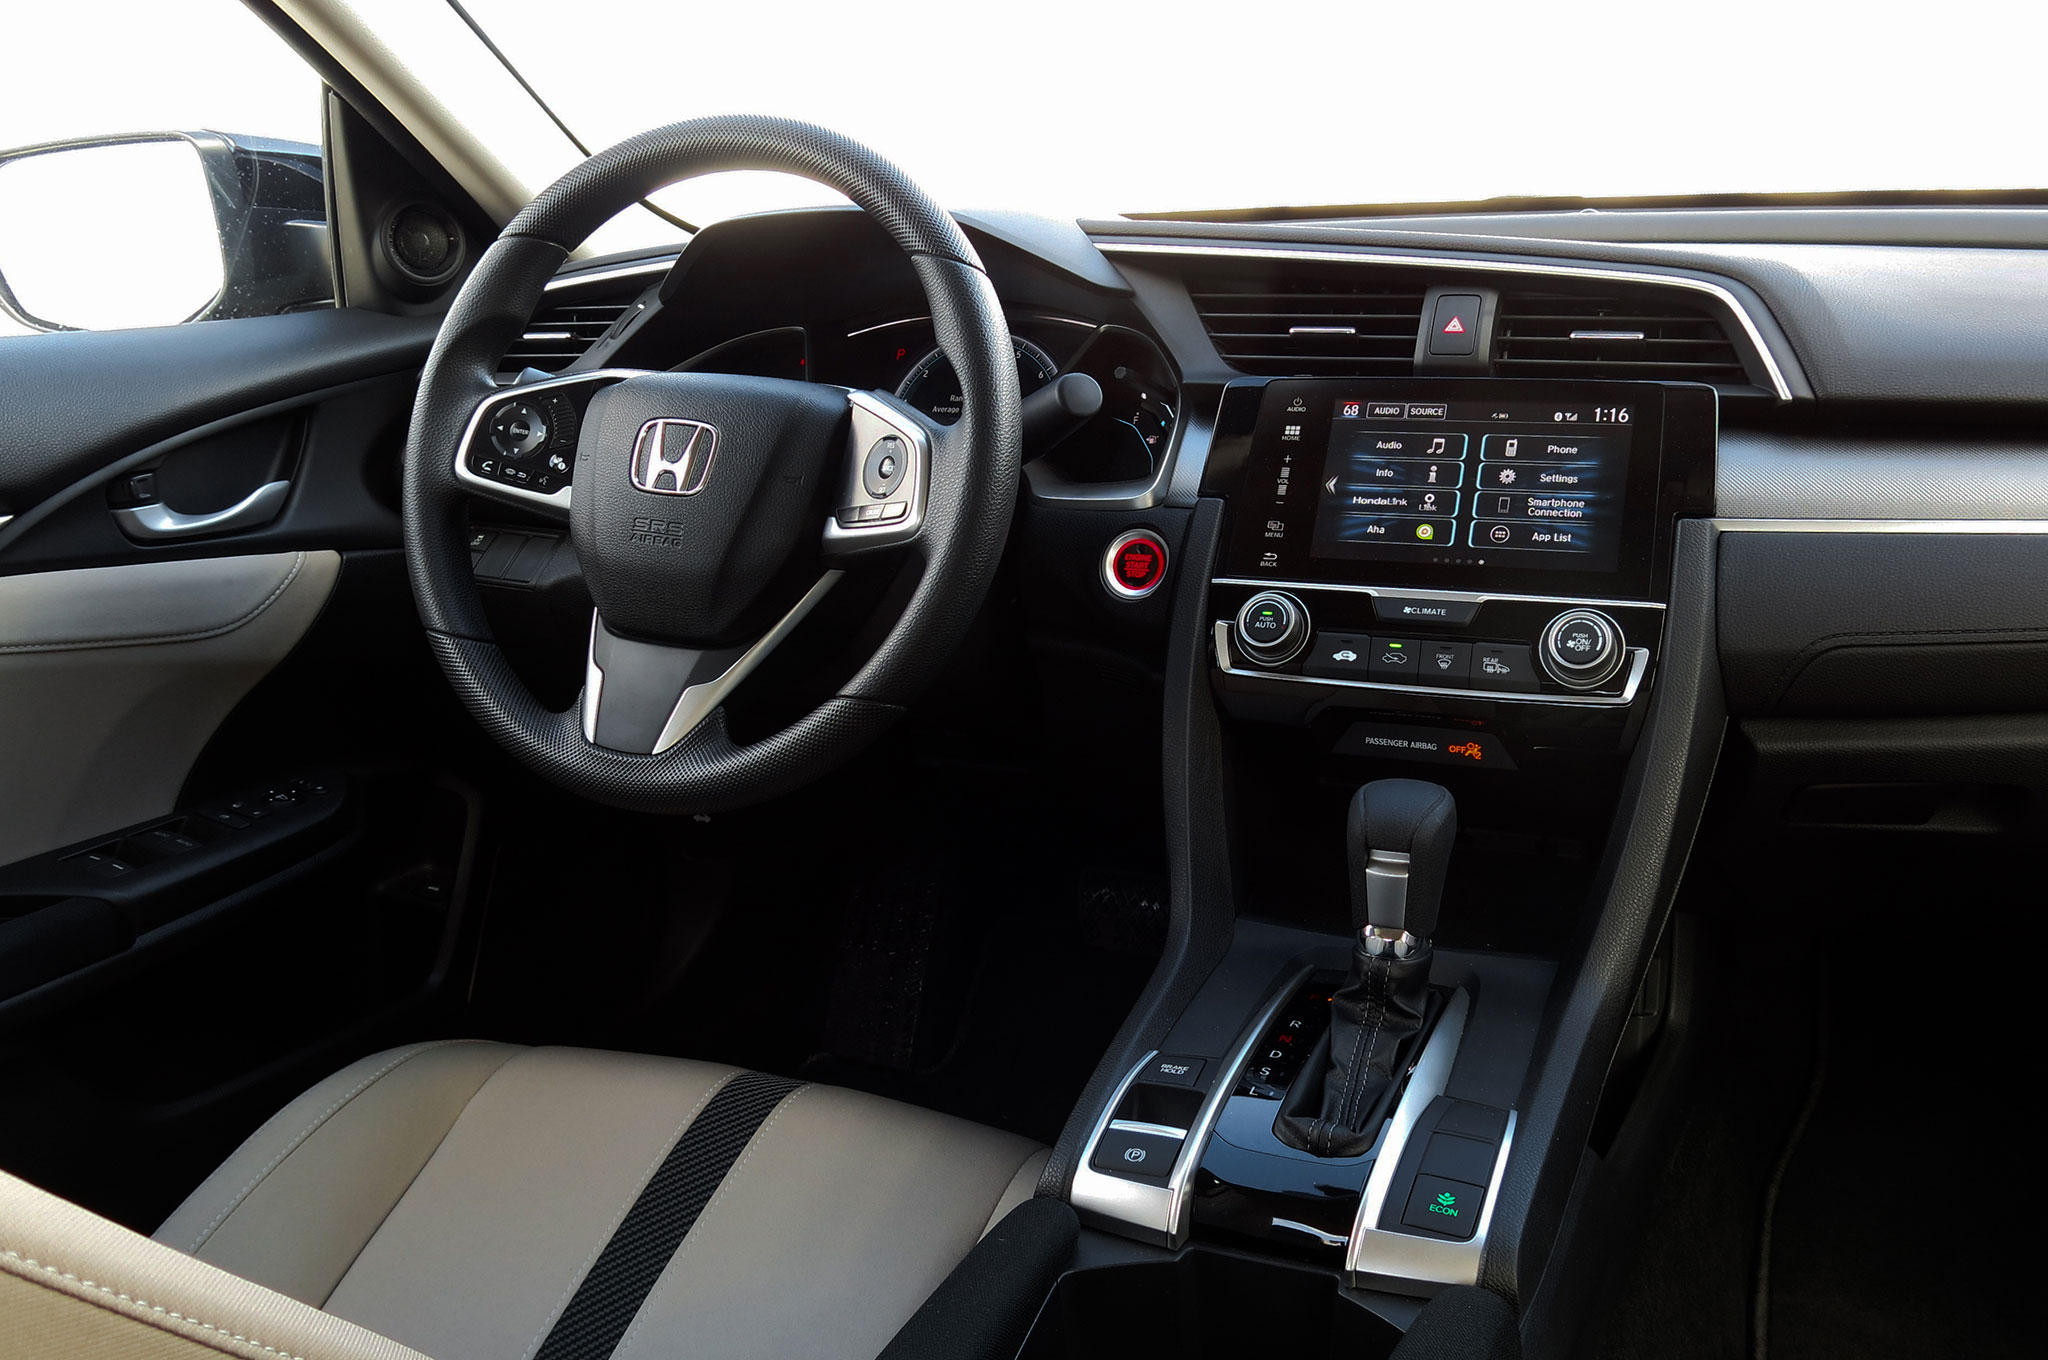 2016 honda civic ex sedan review automobile magazine - 2016 honda civic si coupe interior ...